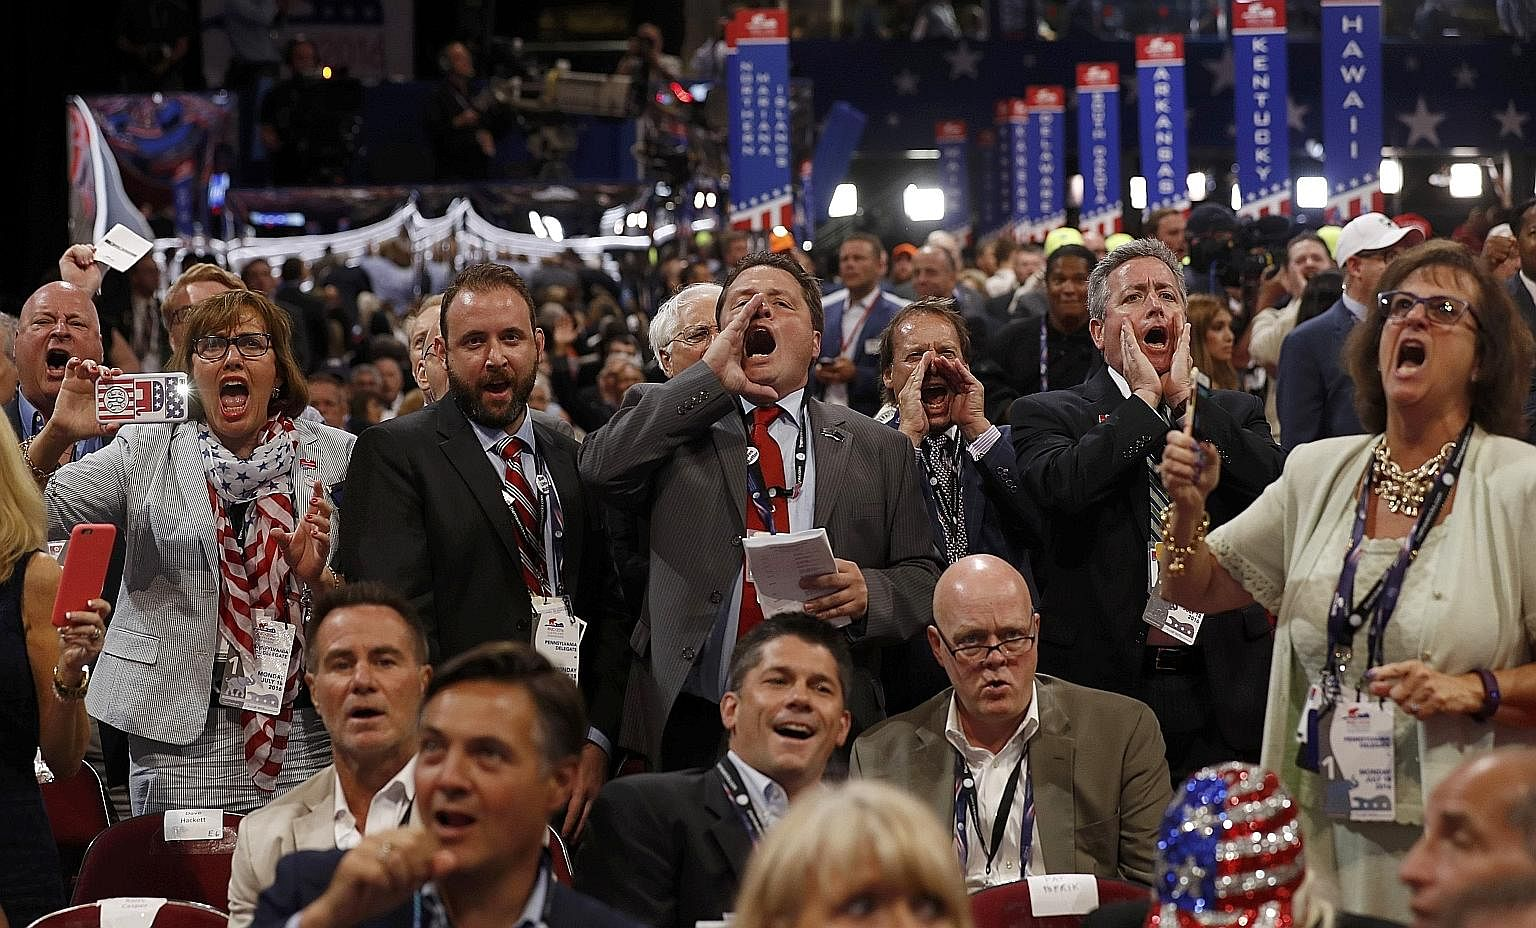 The four-day Republican confab turned out to be an approximate reflection of Mr Donald Trump's campaign - it was boisterous, angry and unpredictable, but also seemingly unflappable in the face of controversy.